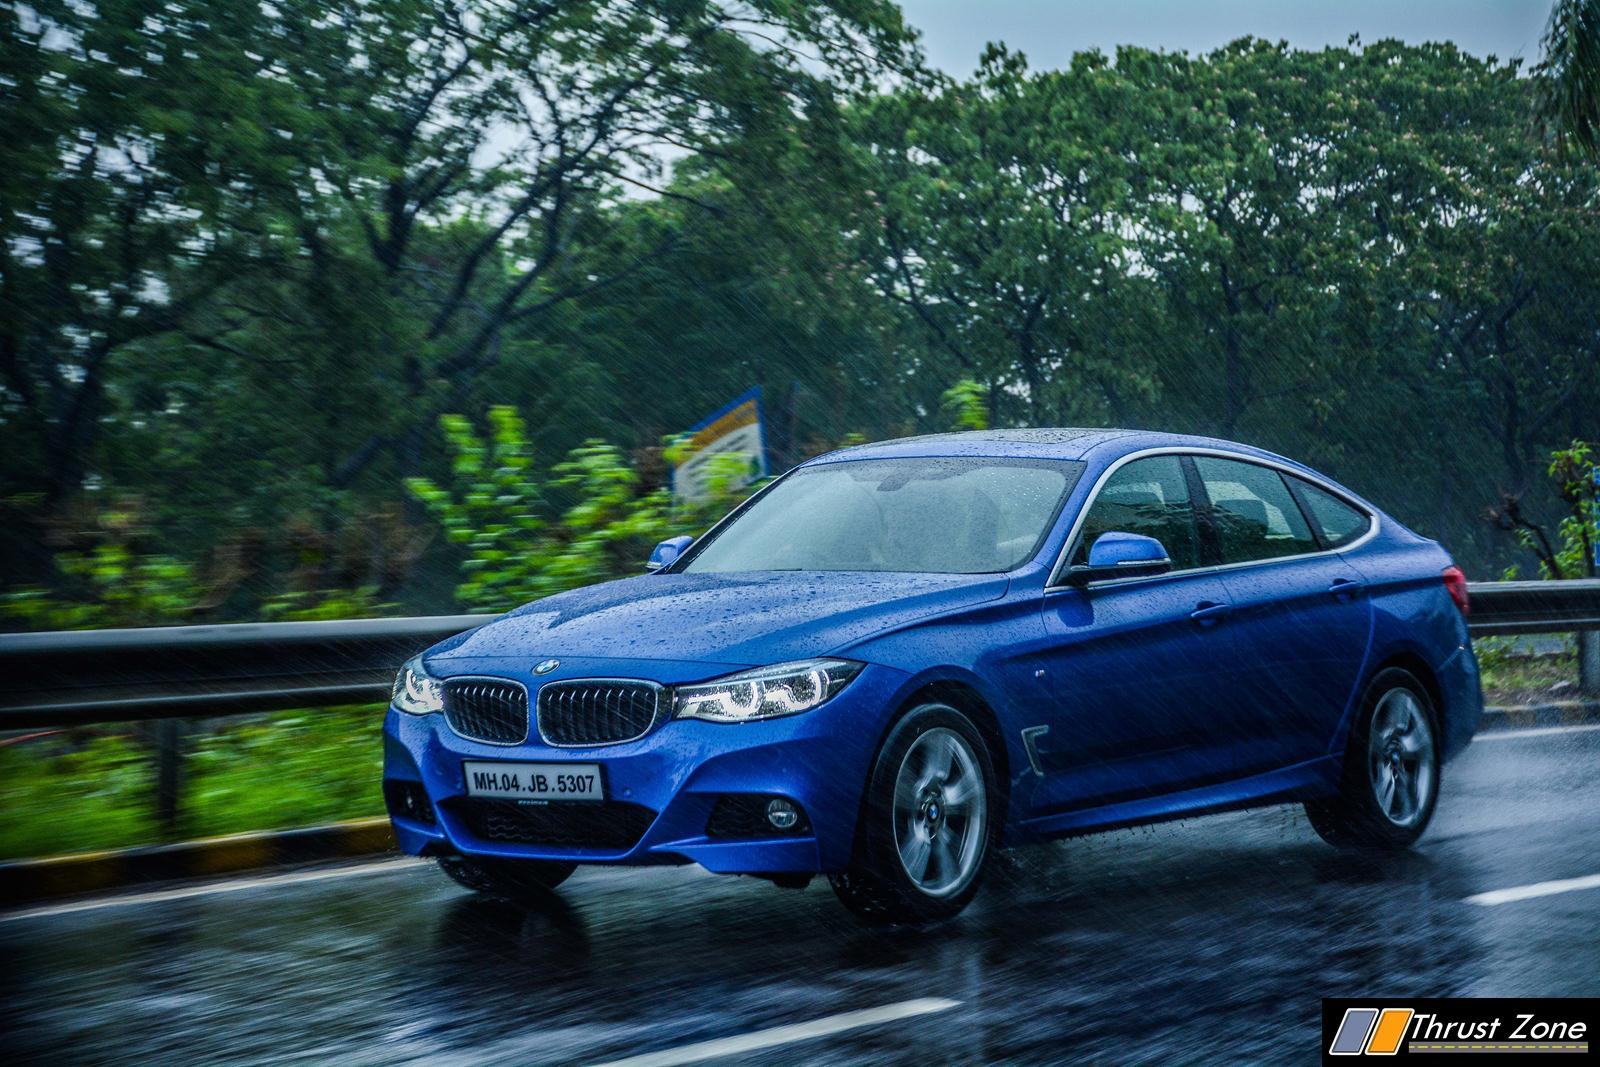 https://www.thrustzone.com/wp-content/uploads/2018/08/2018-BMW-3GT-Petrol-India-Review-1.jpg